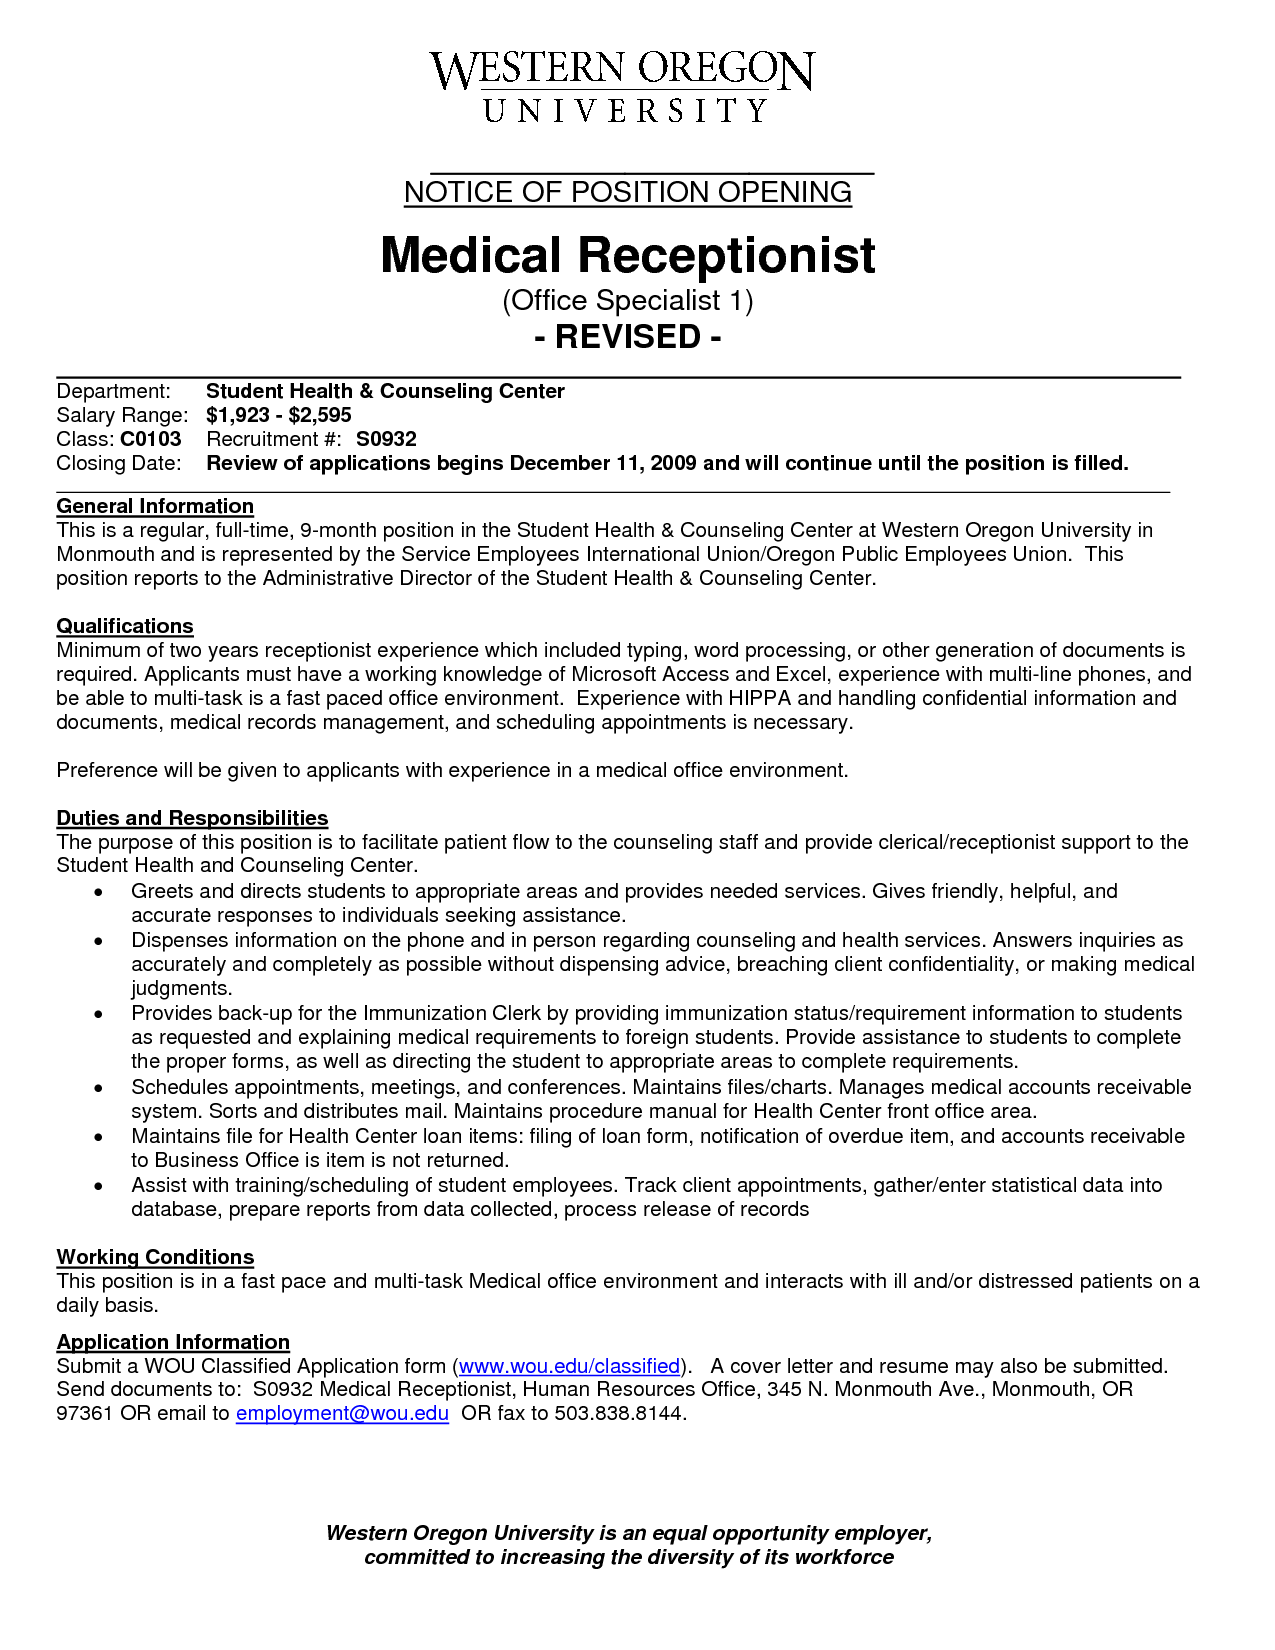 Medical Receptionist Resume With No Experience Http